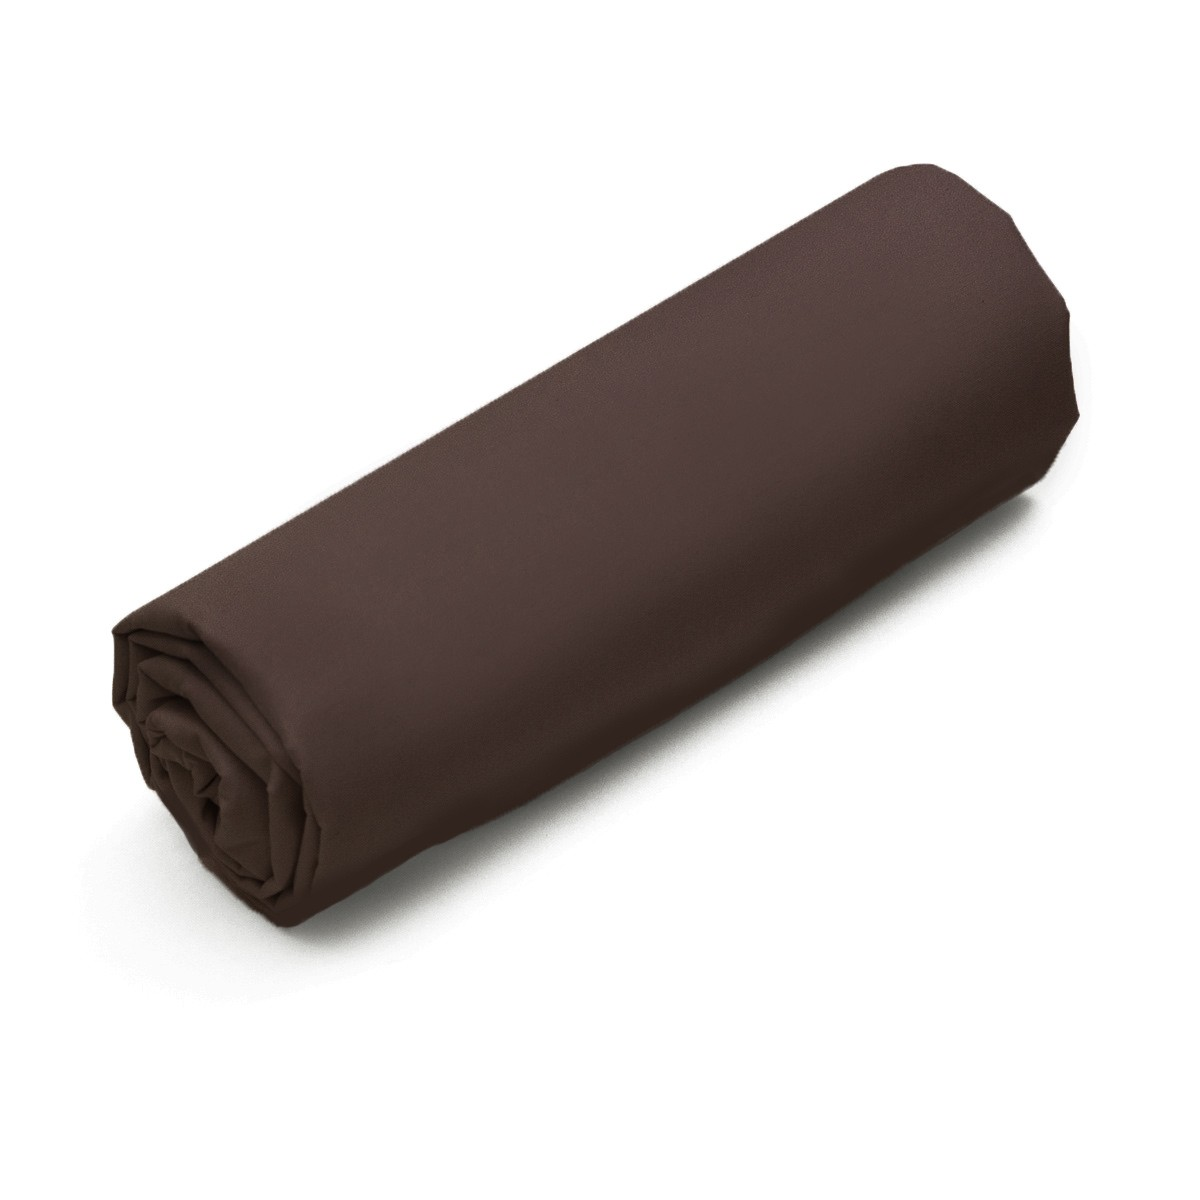 Fitted Sheet Solid Color Cotton brown | Bed linen | Tradition des Vosges